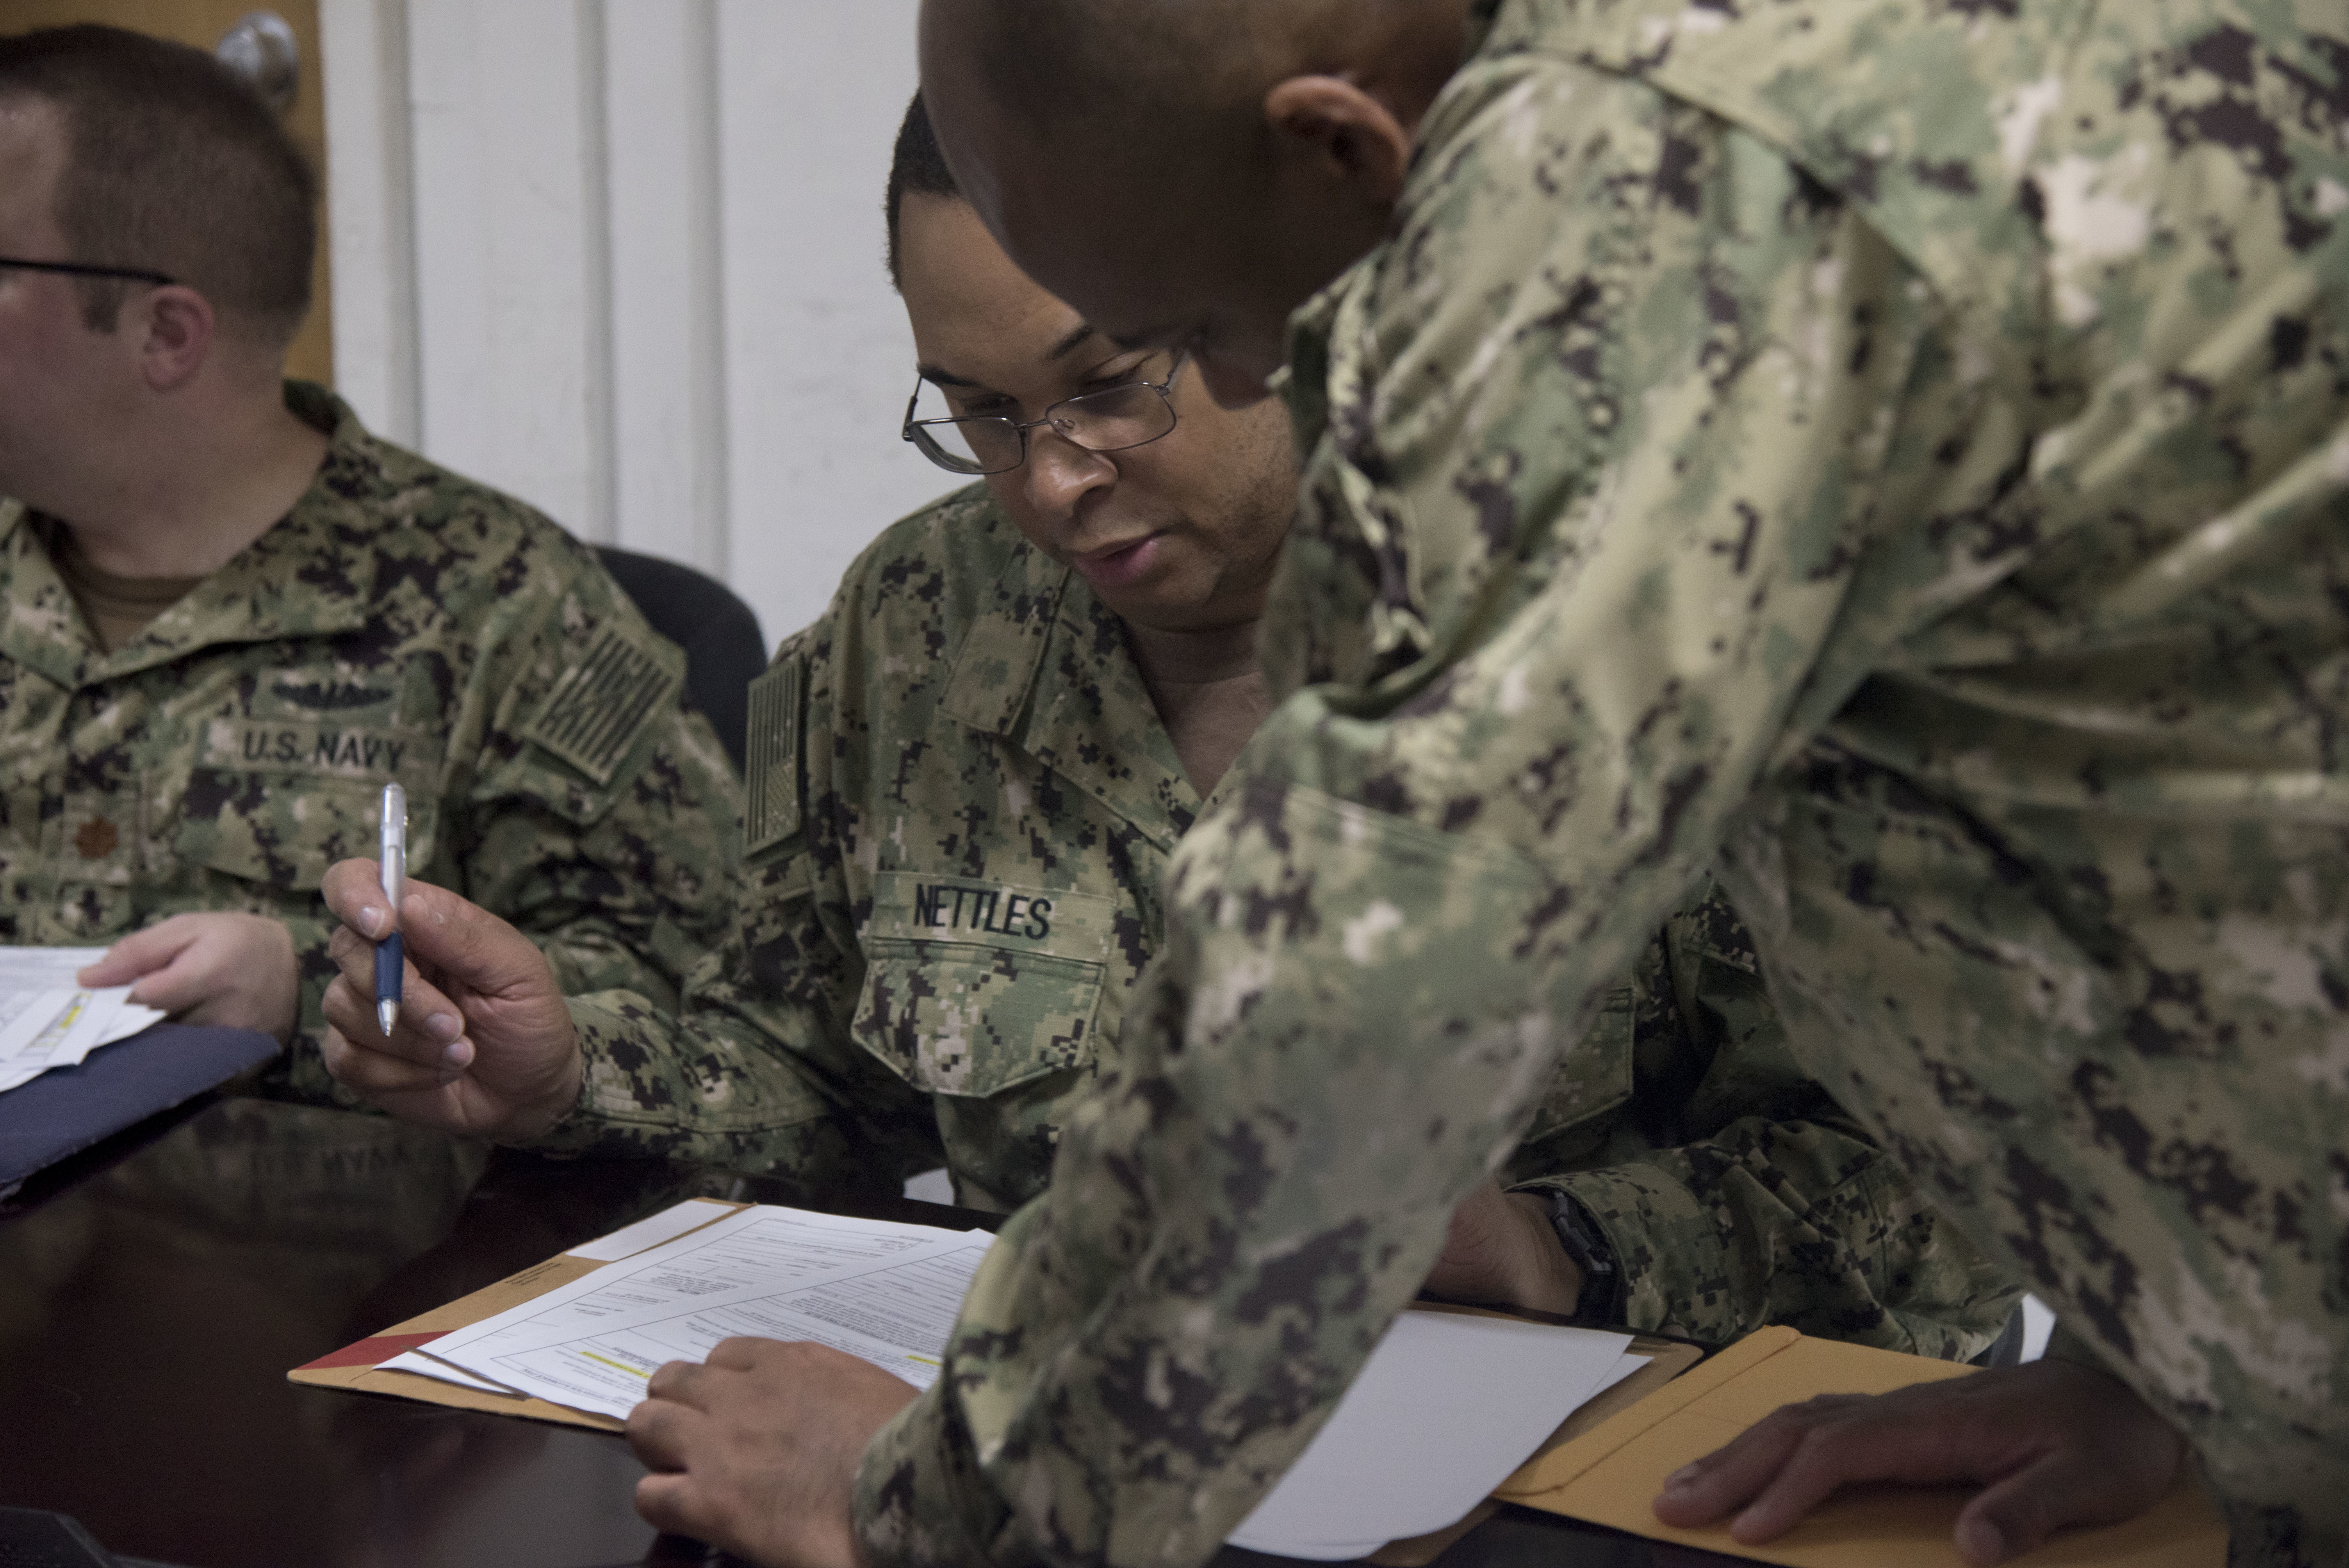 U.S. Navy Petty Officer 2nd Class Michael Roseborough, a personnel specialist with the Joint Personnel Center (JPC) assigned to Combined Joint Task Force-Horn of Africa, assists U.S. Navy Cmdr. Chris Nettles, incoming deputy director of communications for CJTF-HOA, in filling out entitlements paperwork at a mass in-processing briefing at Camp Lemonnier, Djibouti, Jan. 25, 2019. Mass in-processing briefings are just one of the tasks the JPC undertakes for Combined Joint Task Force-Horn of Africa. (U.S. Air Force photo by Senior Airman Kirsten Brandes)